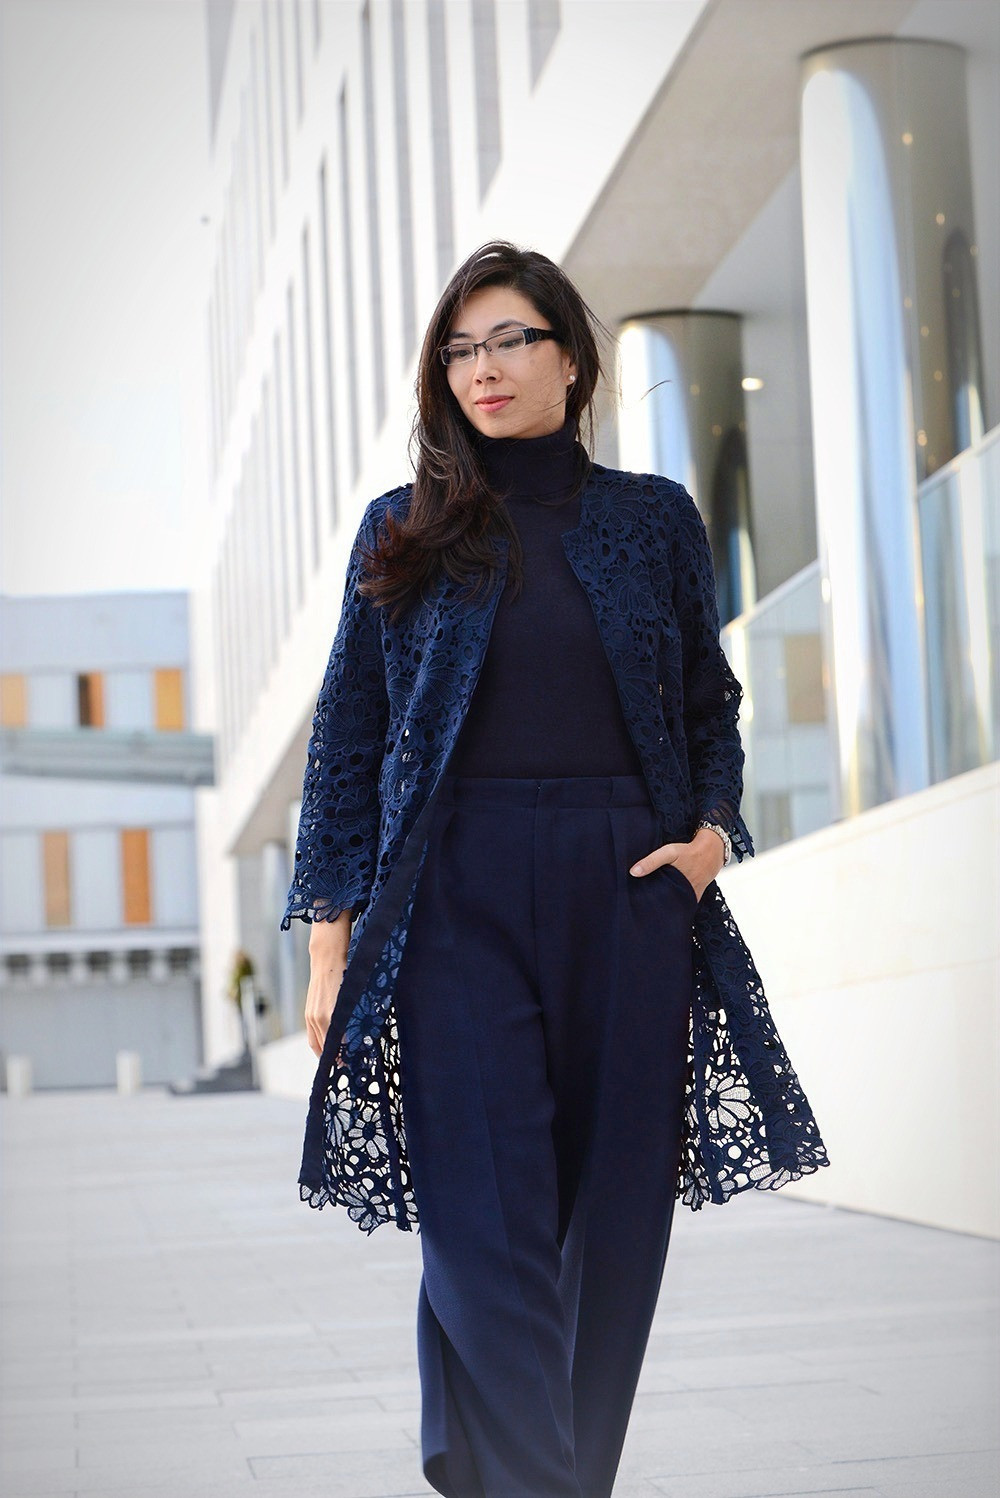 Business Casual woman outfit with a navy floral lace coat and a navy pants from Roland Mouret.